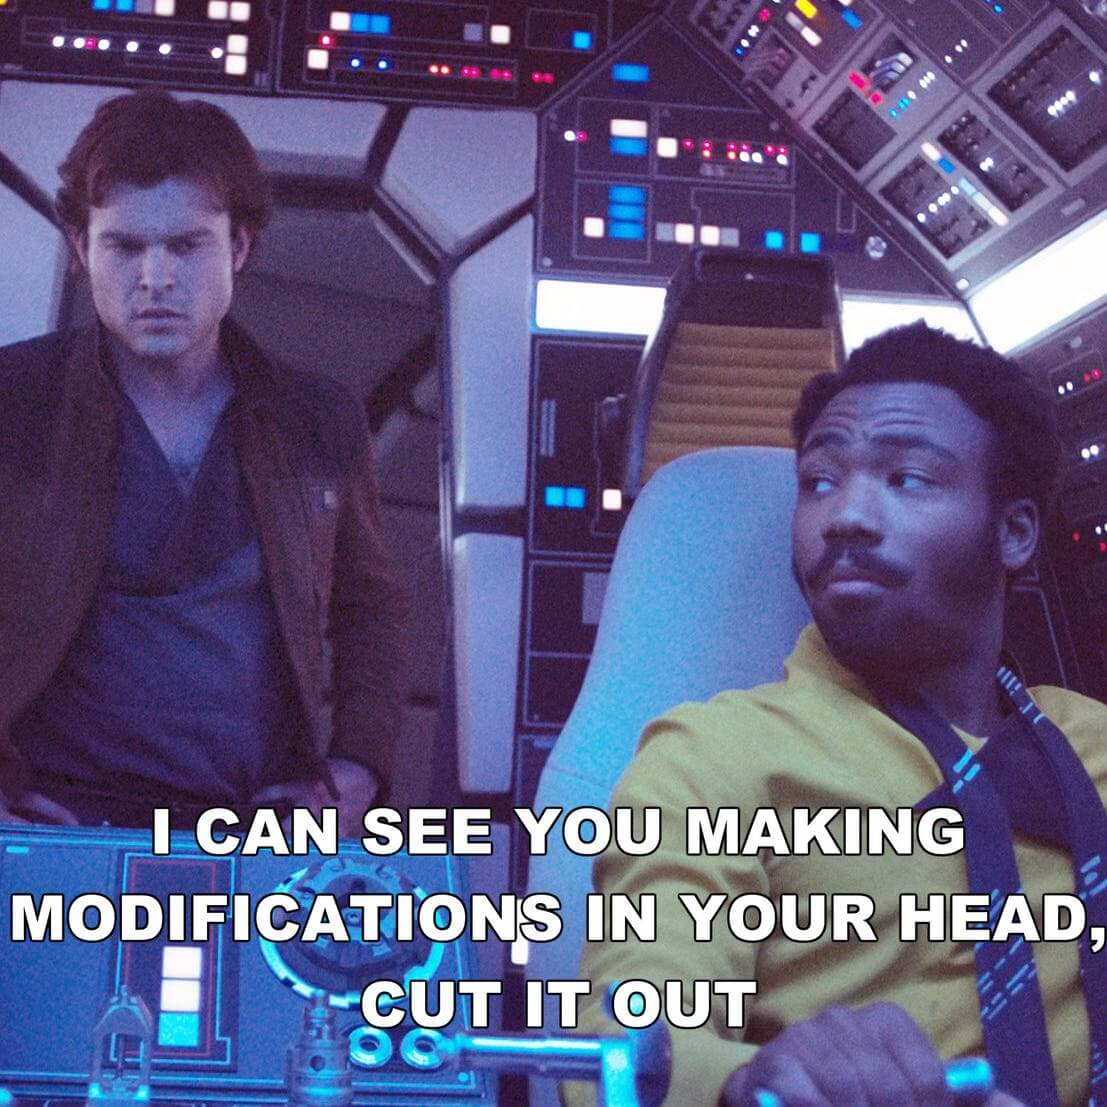 Solo And Lando Calrissian pictures 15 (1)